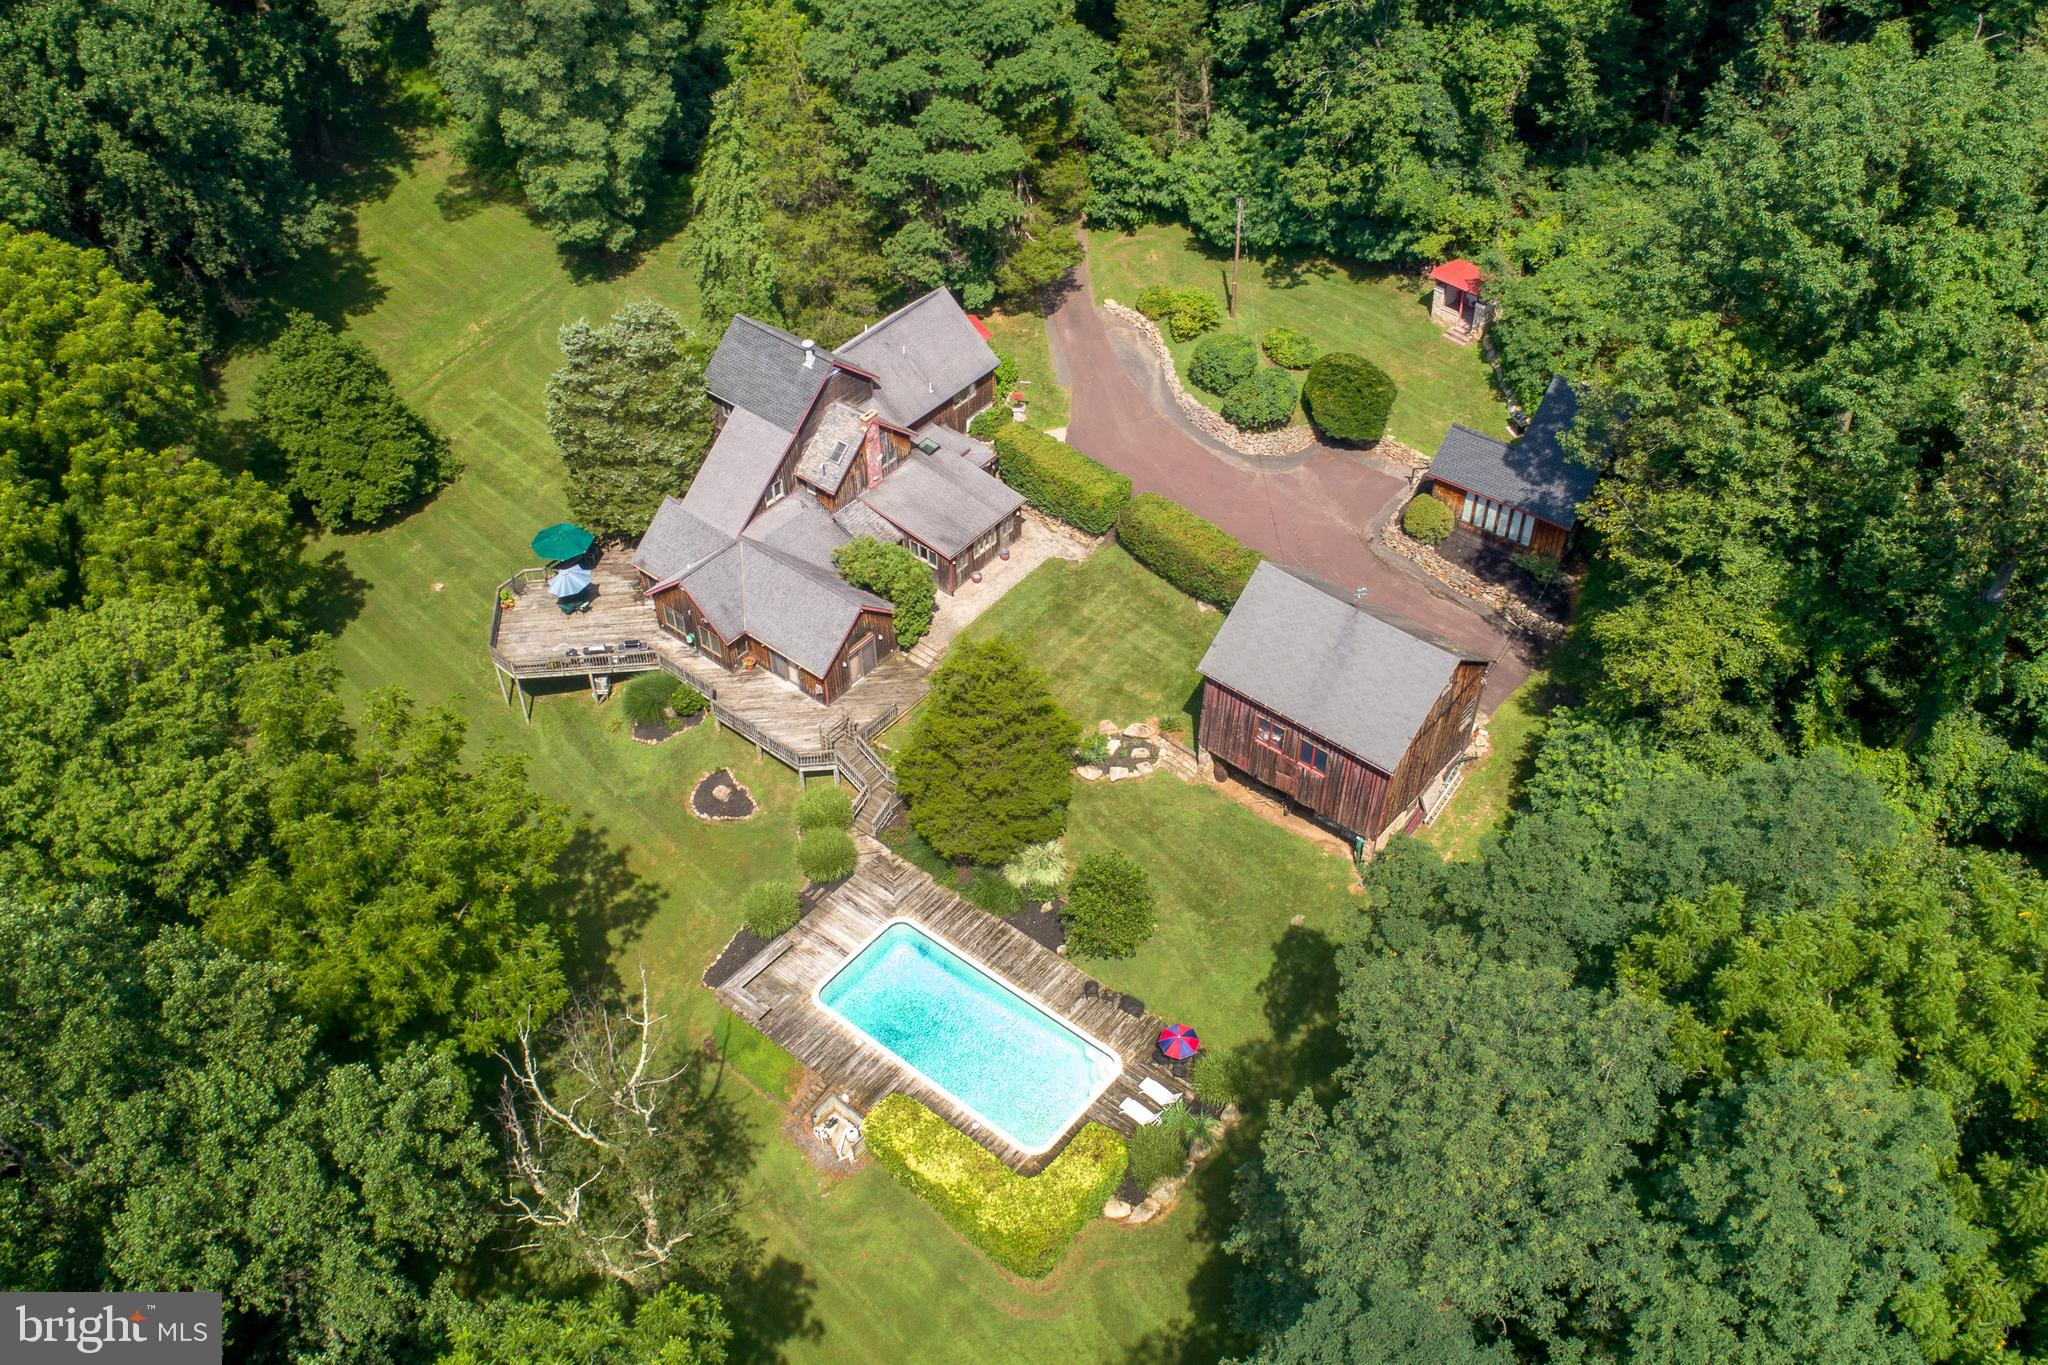 405 County Line Rd, Riegelsville, PA, 18077